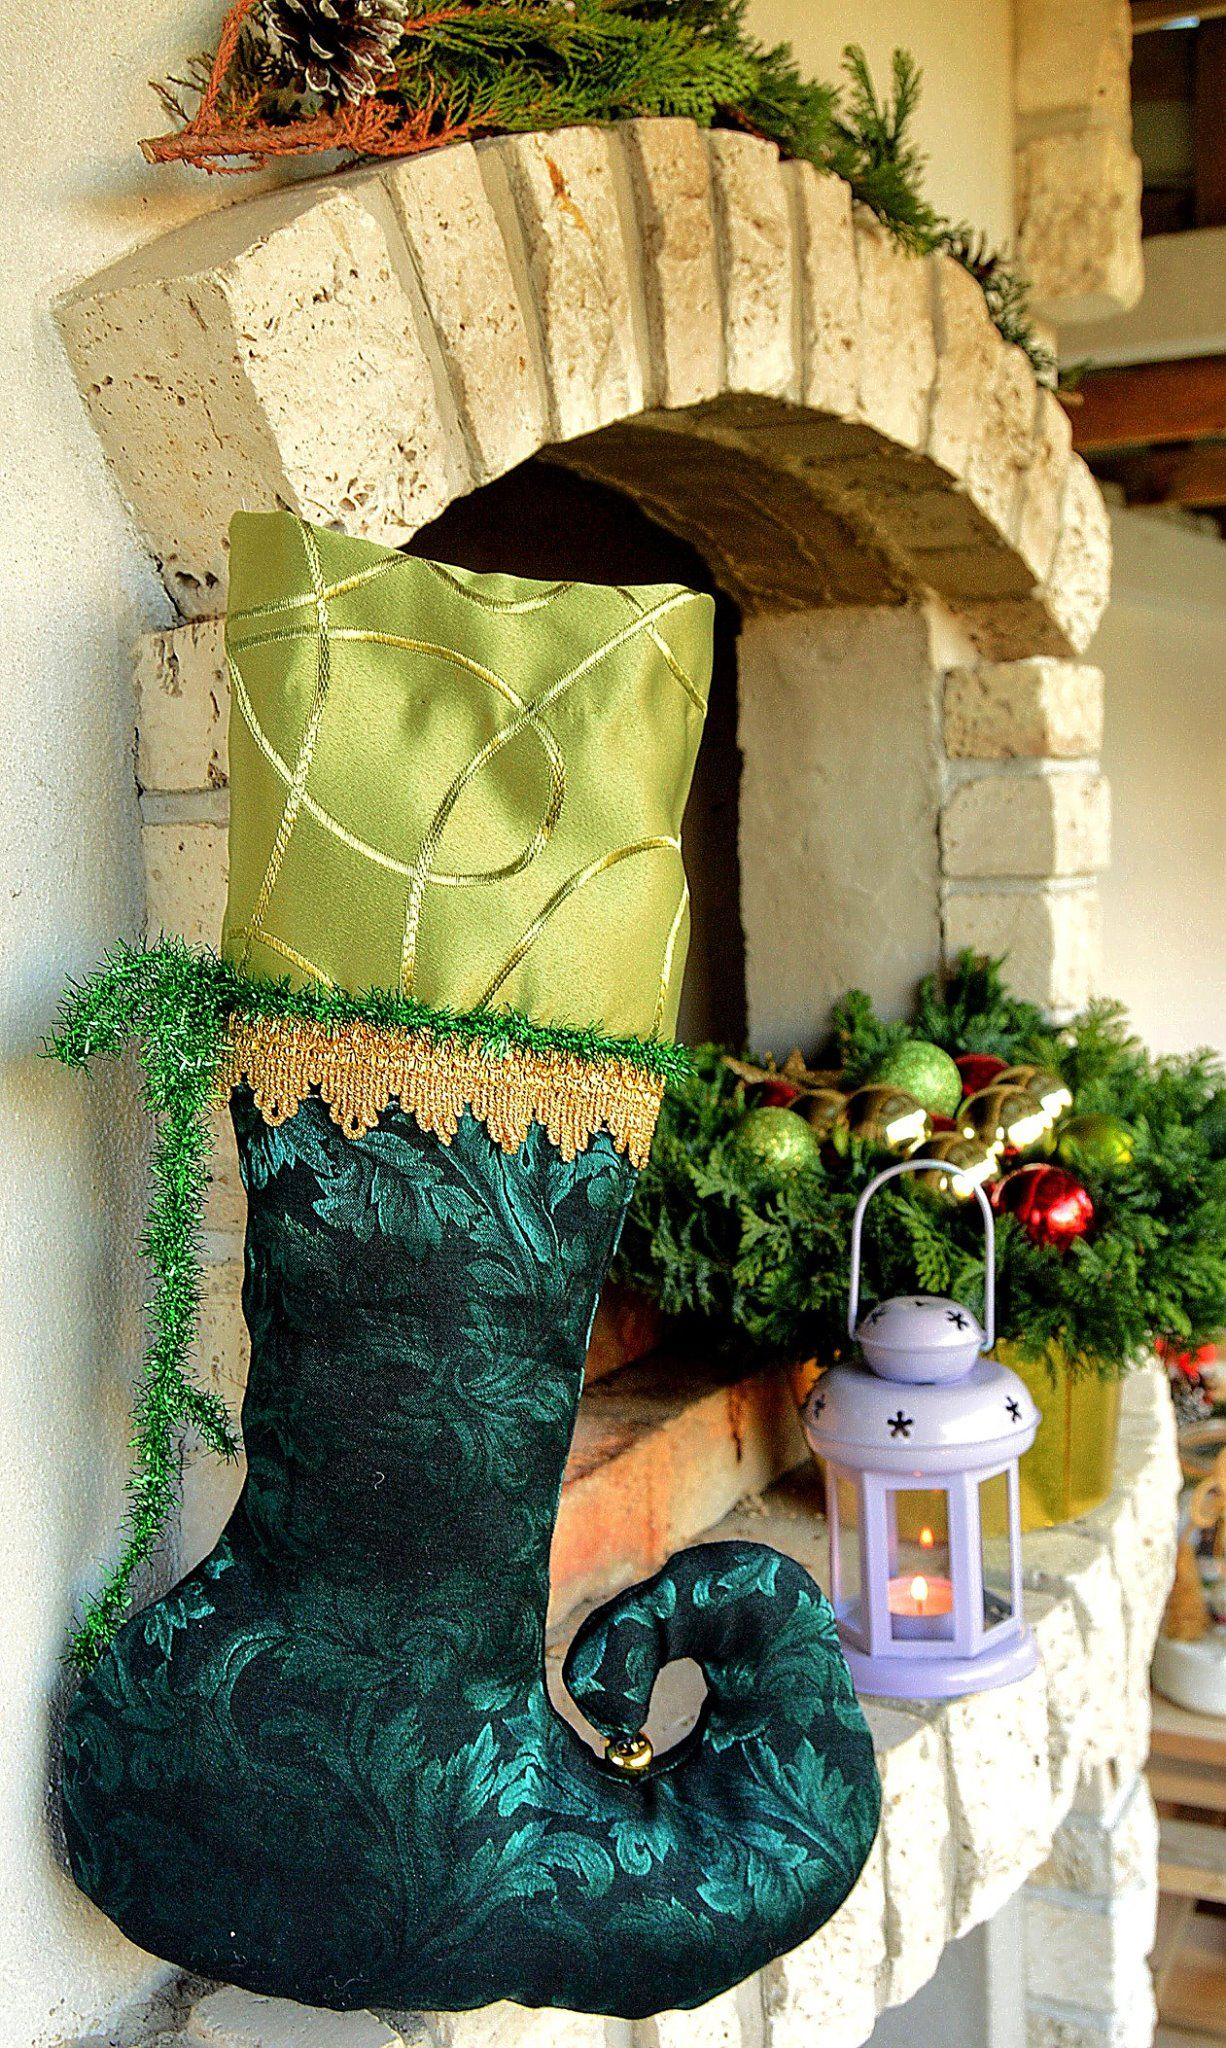 Large Christmas Bells Decorations Pinlevoncia Levon On Home Decor  Pinterest  Large Christmas